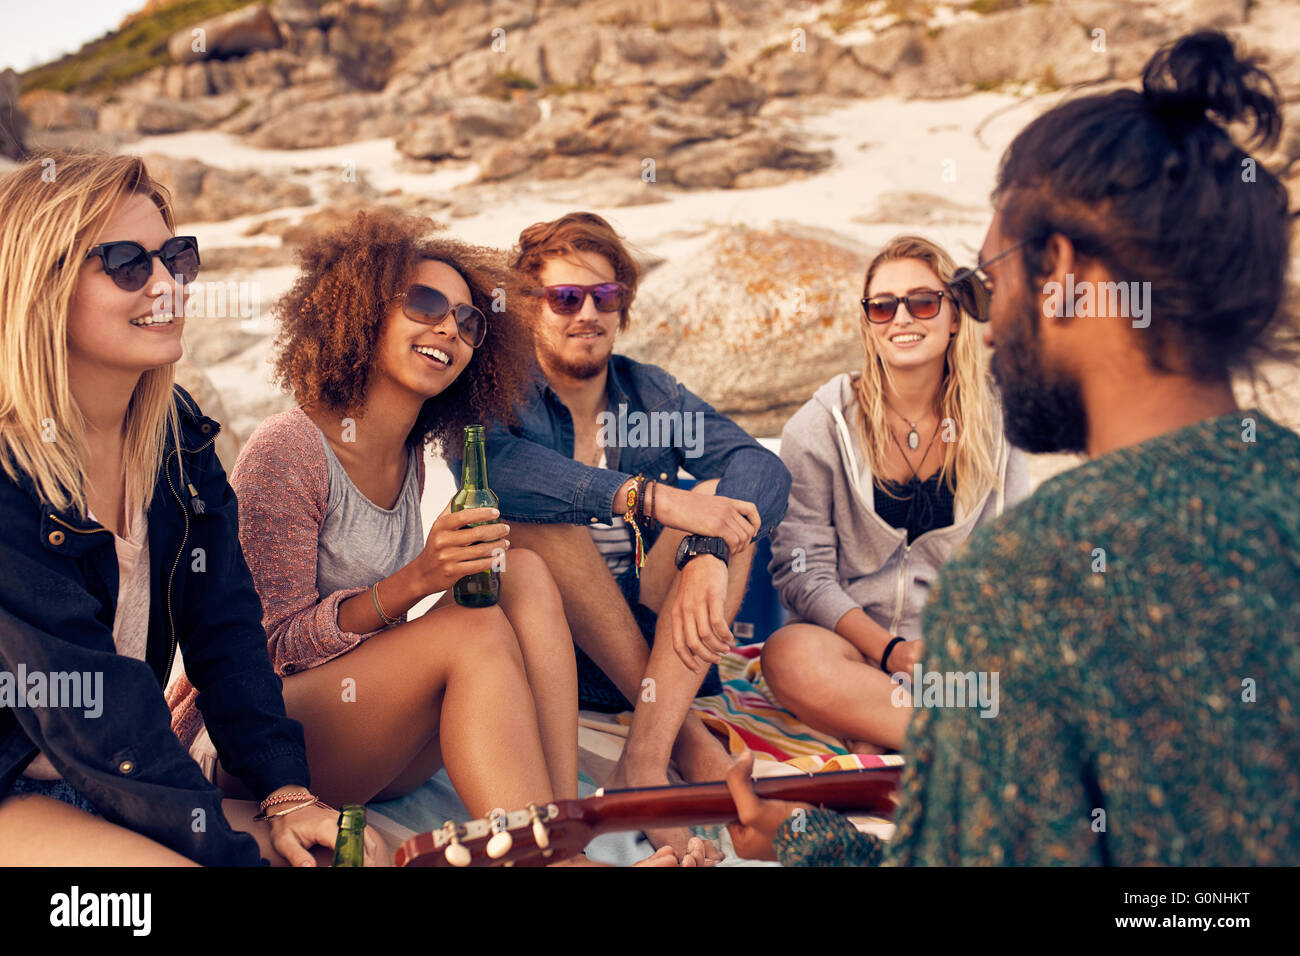 Group of young people listening to a friend playing guitar at the beach. Diverse group of friends hanging out at - Stock Image